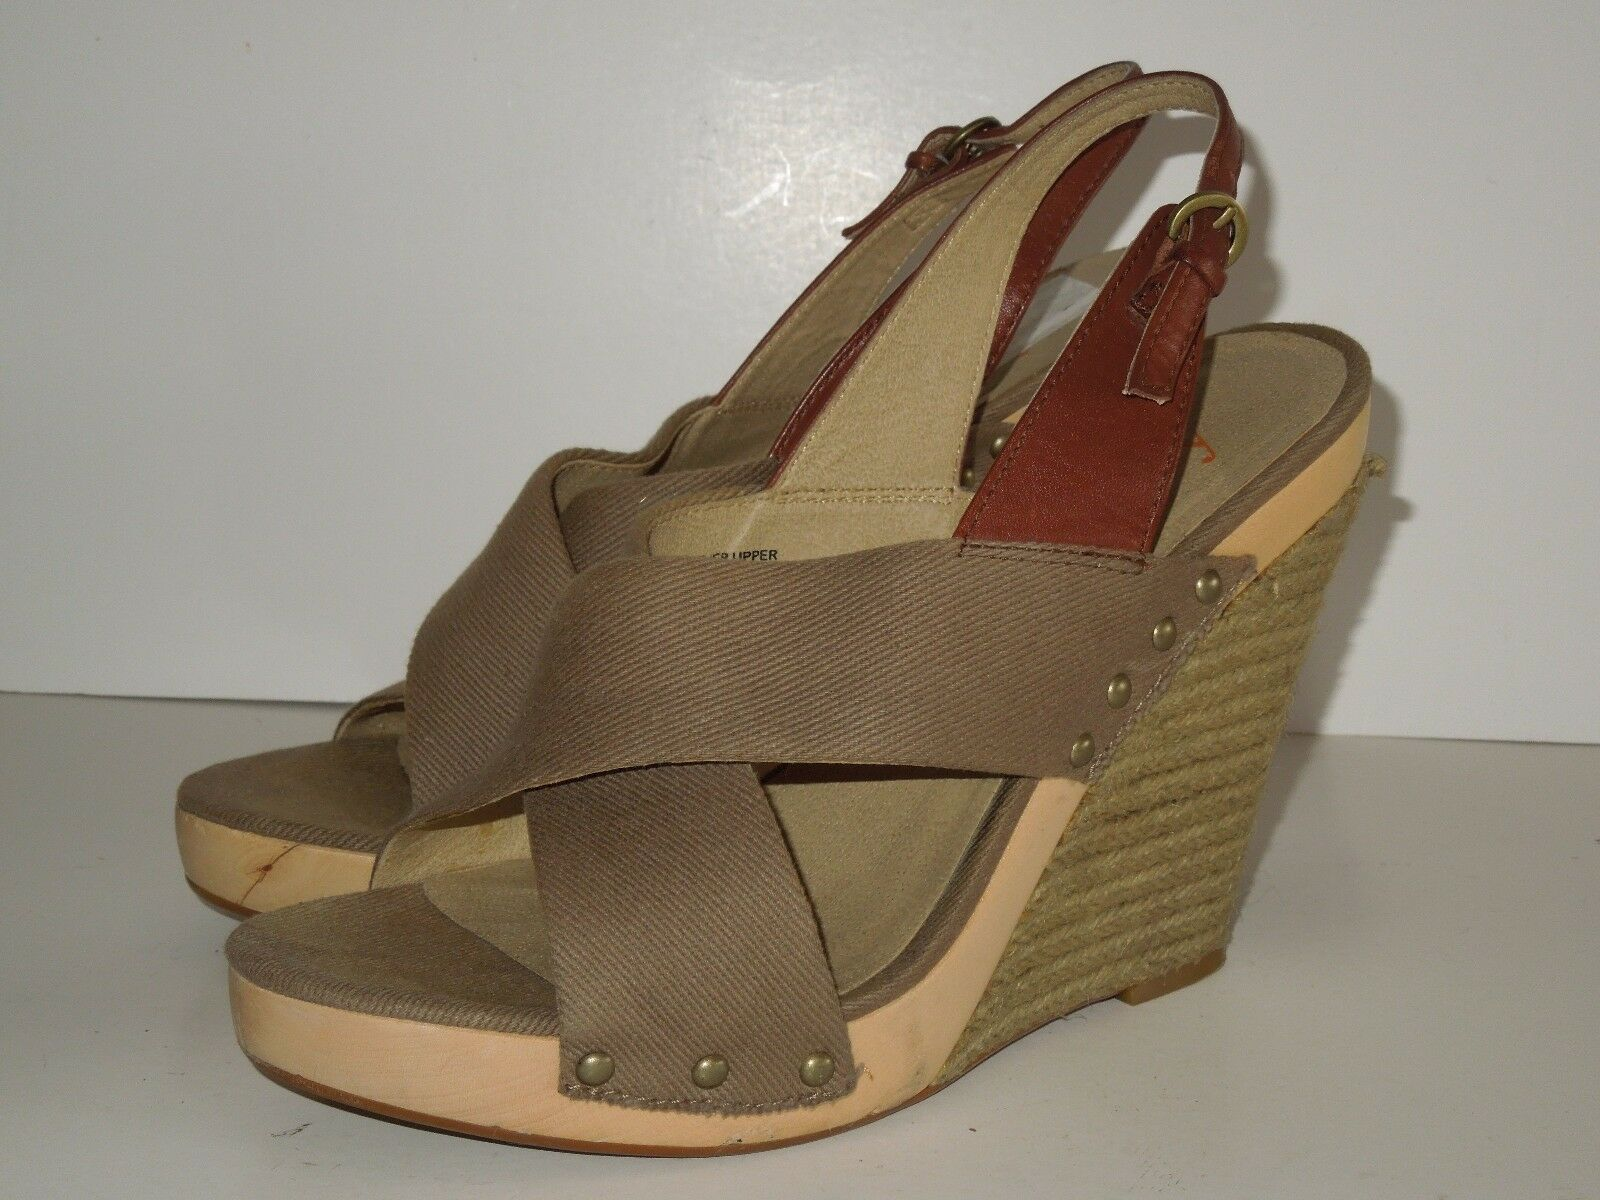 LEVITY WOODEN LEATHER/FABRIC HEELS, OLIVE WEDGES SLING BACK SHOES OLIVE HEELS, GREEN /BROWN 8 db3cbe